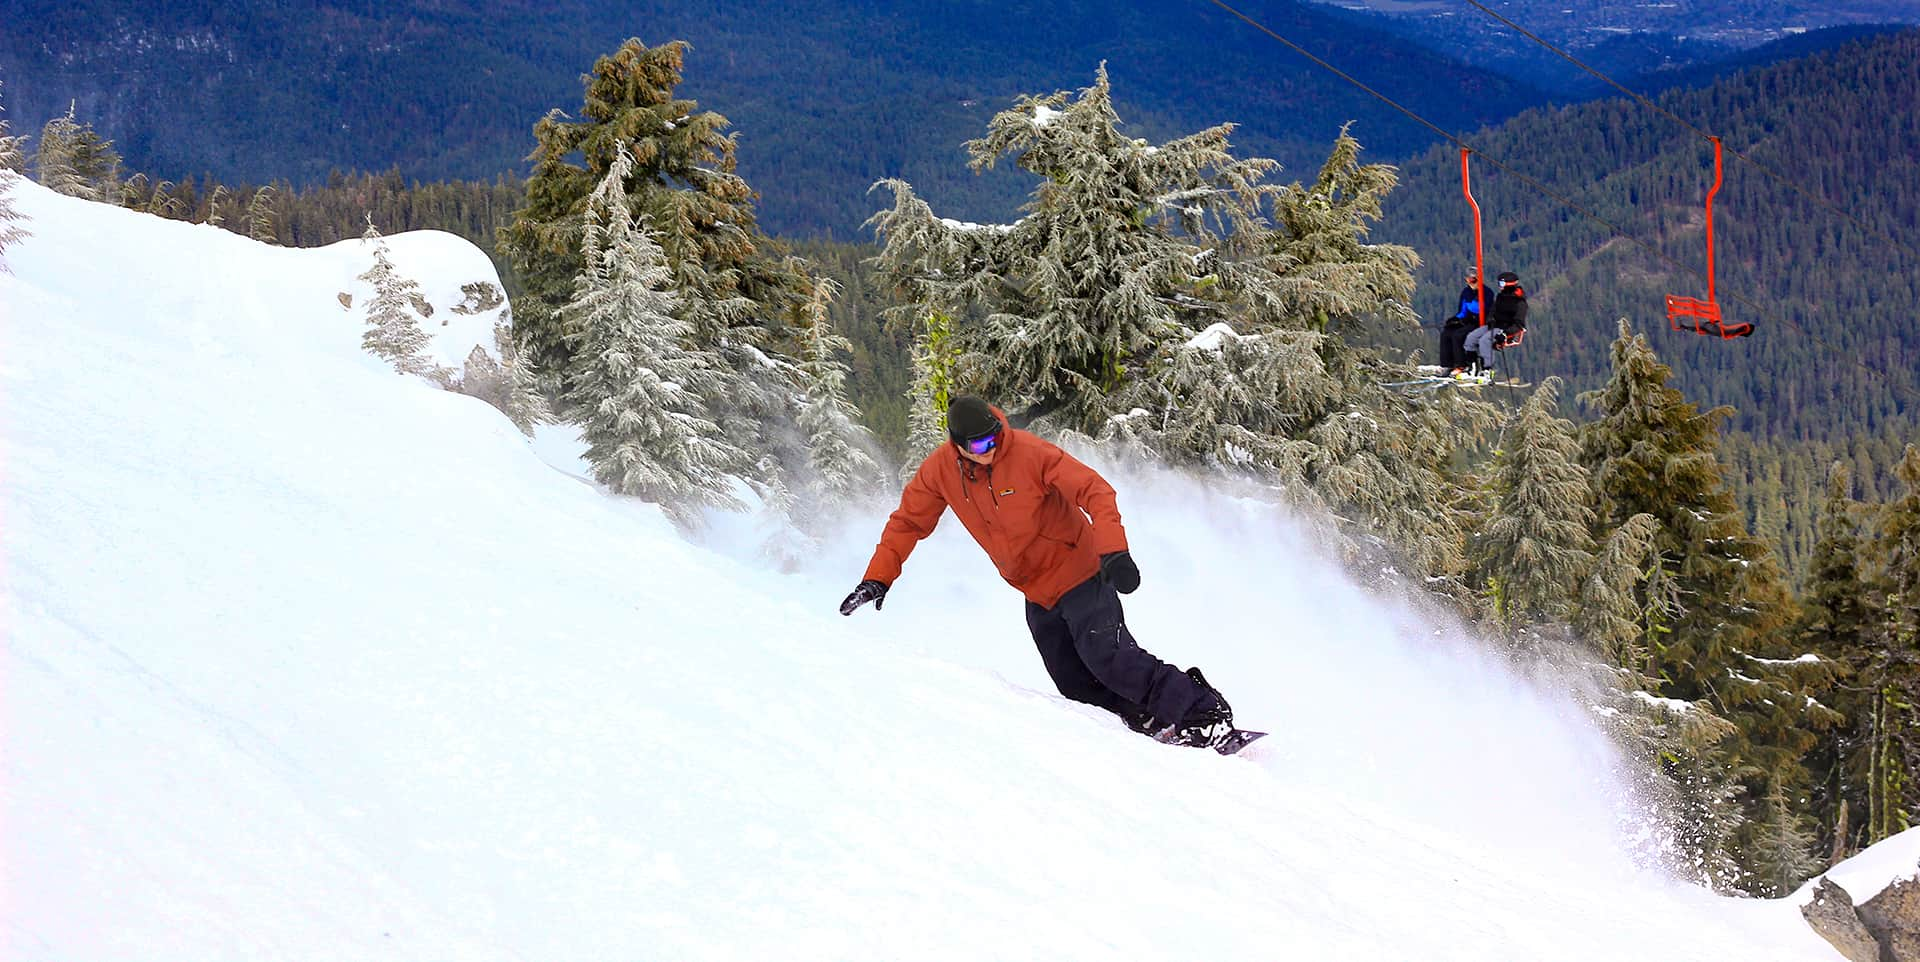 Purchase lift tickets in advance and save